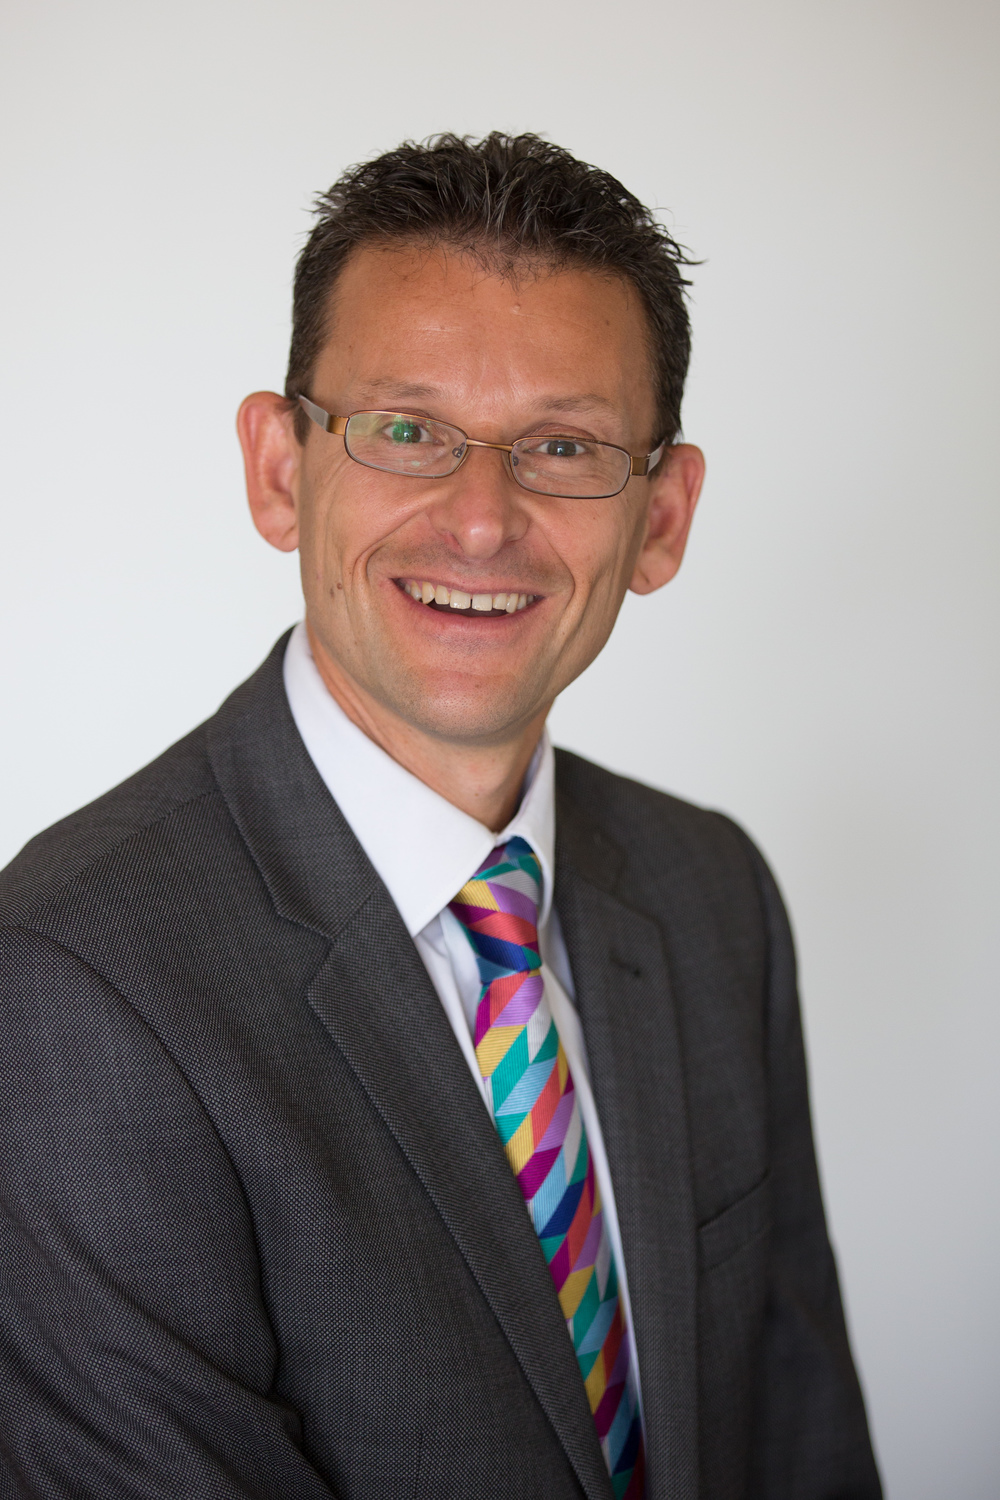 Ivan Lyons Chartered Financial Planner at Investment Solutions